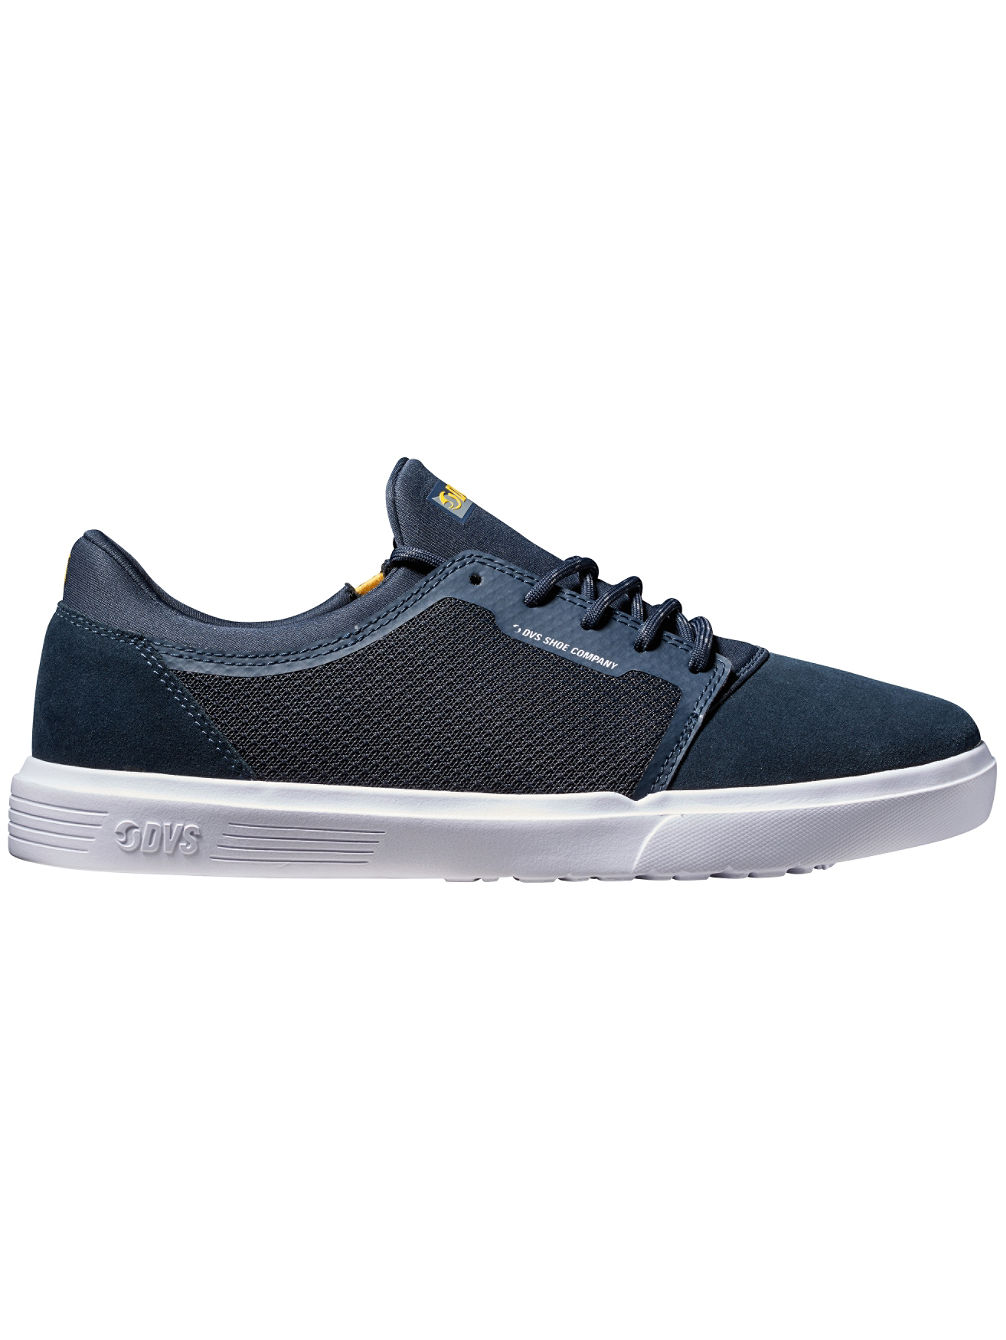 Stratos LT Soco Sneakers